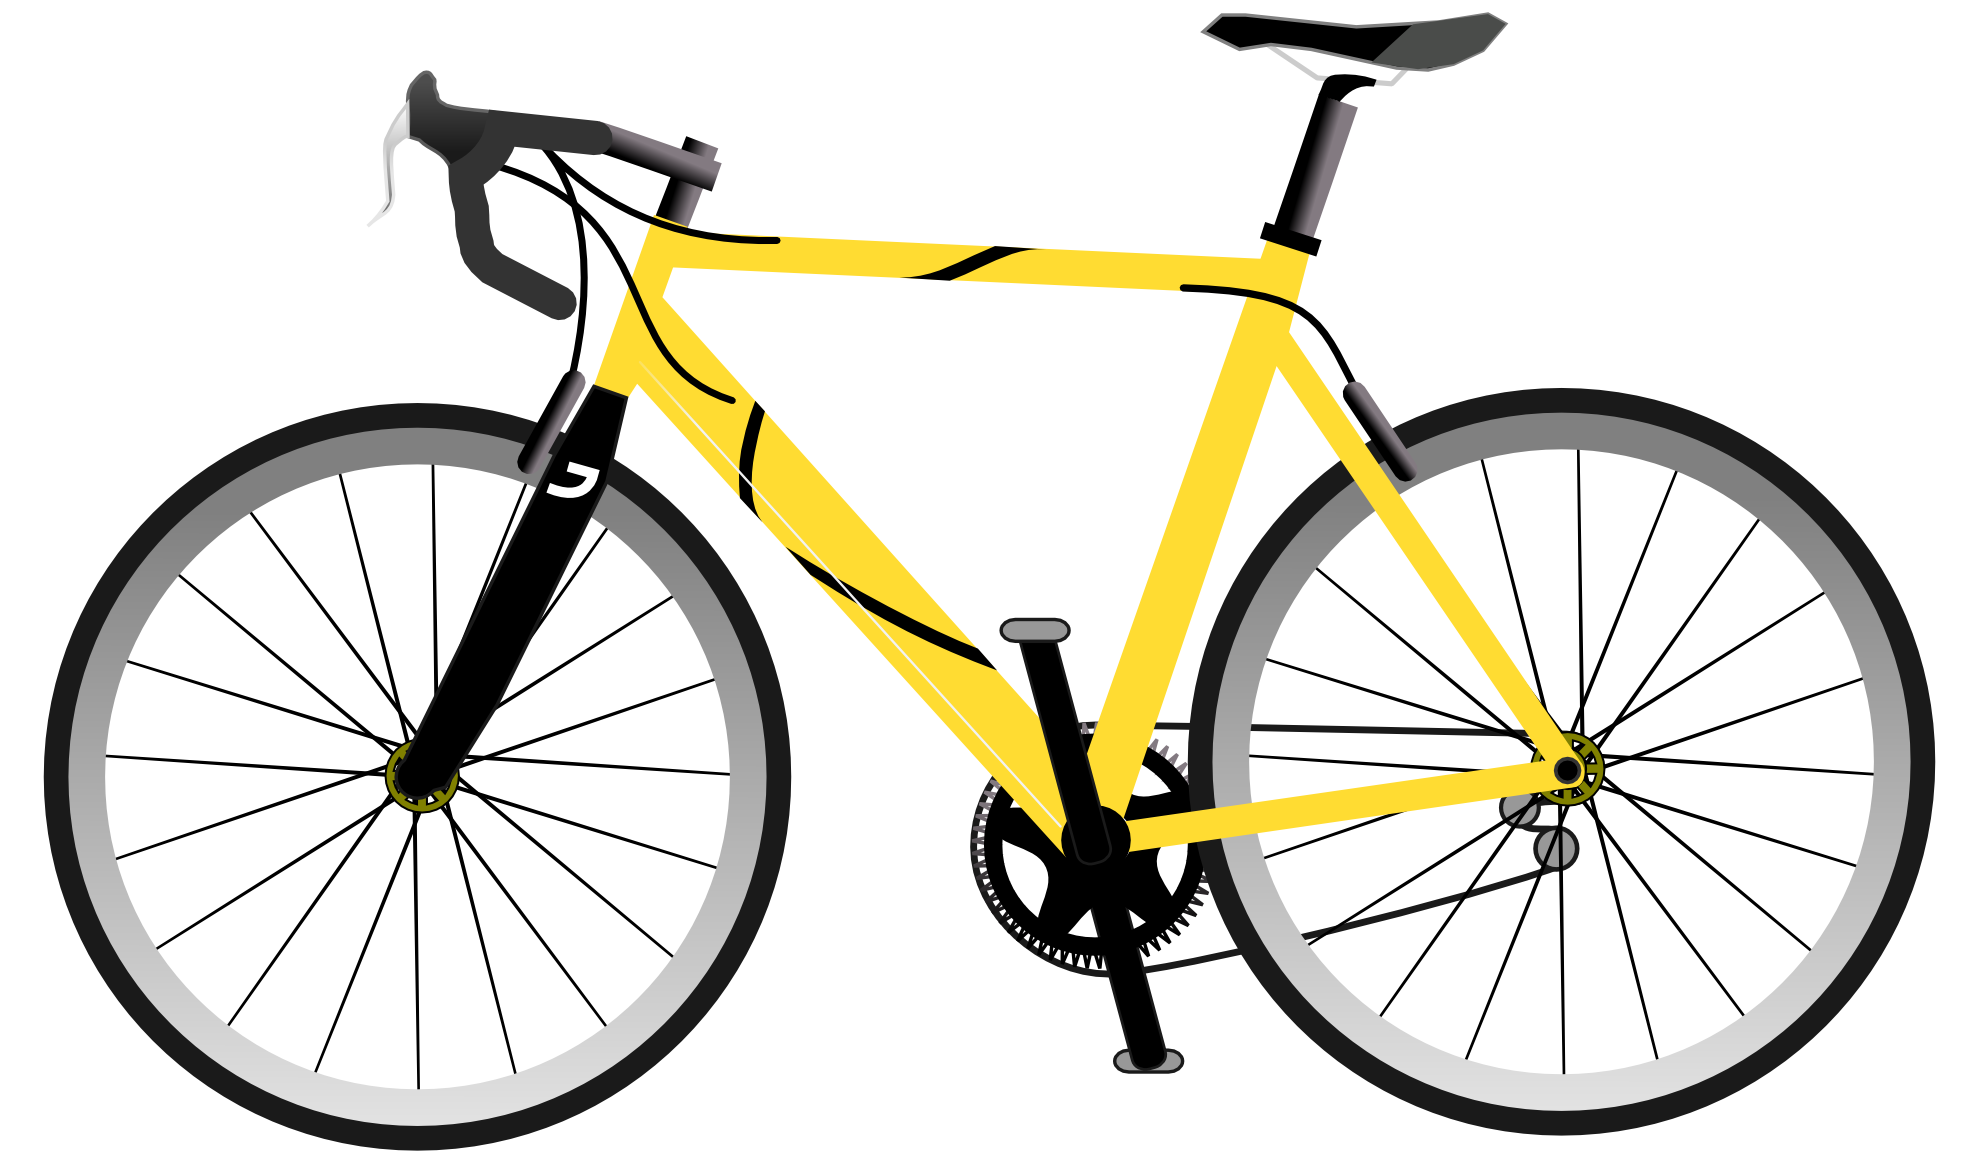 Track clipart transparent. Bicycle png image purepng